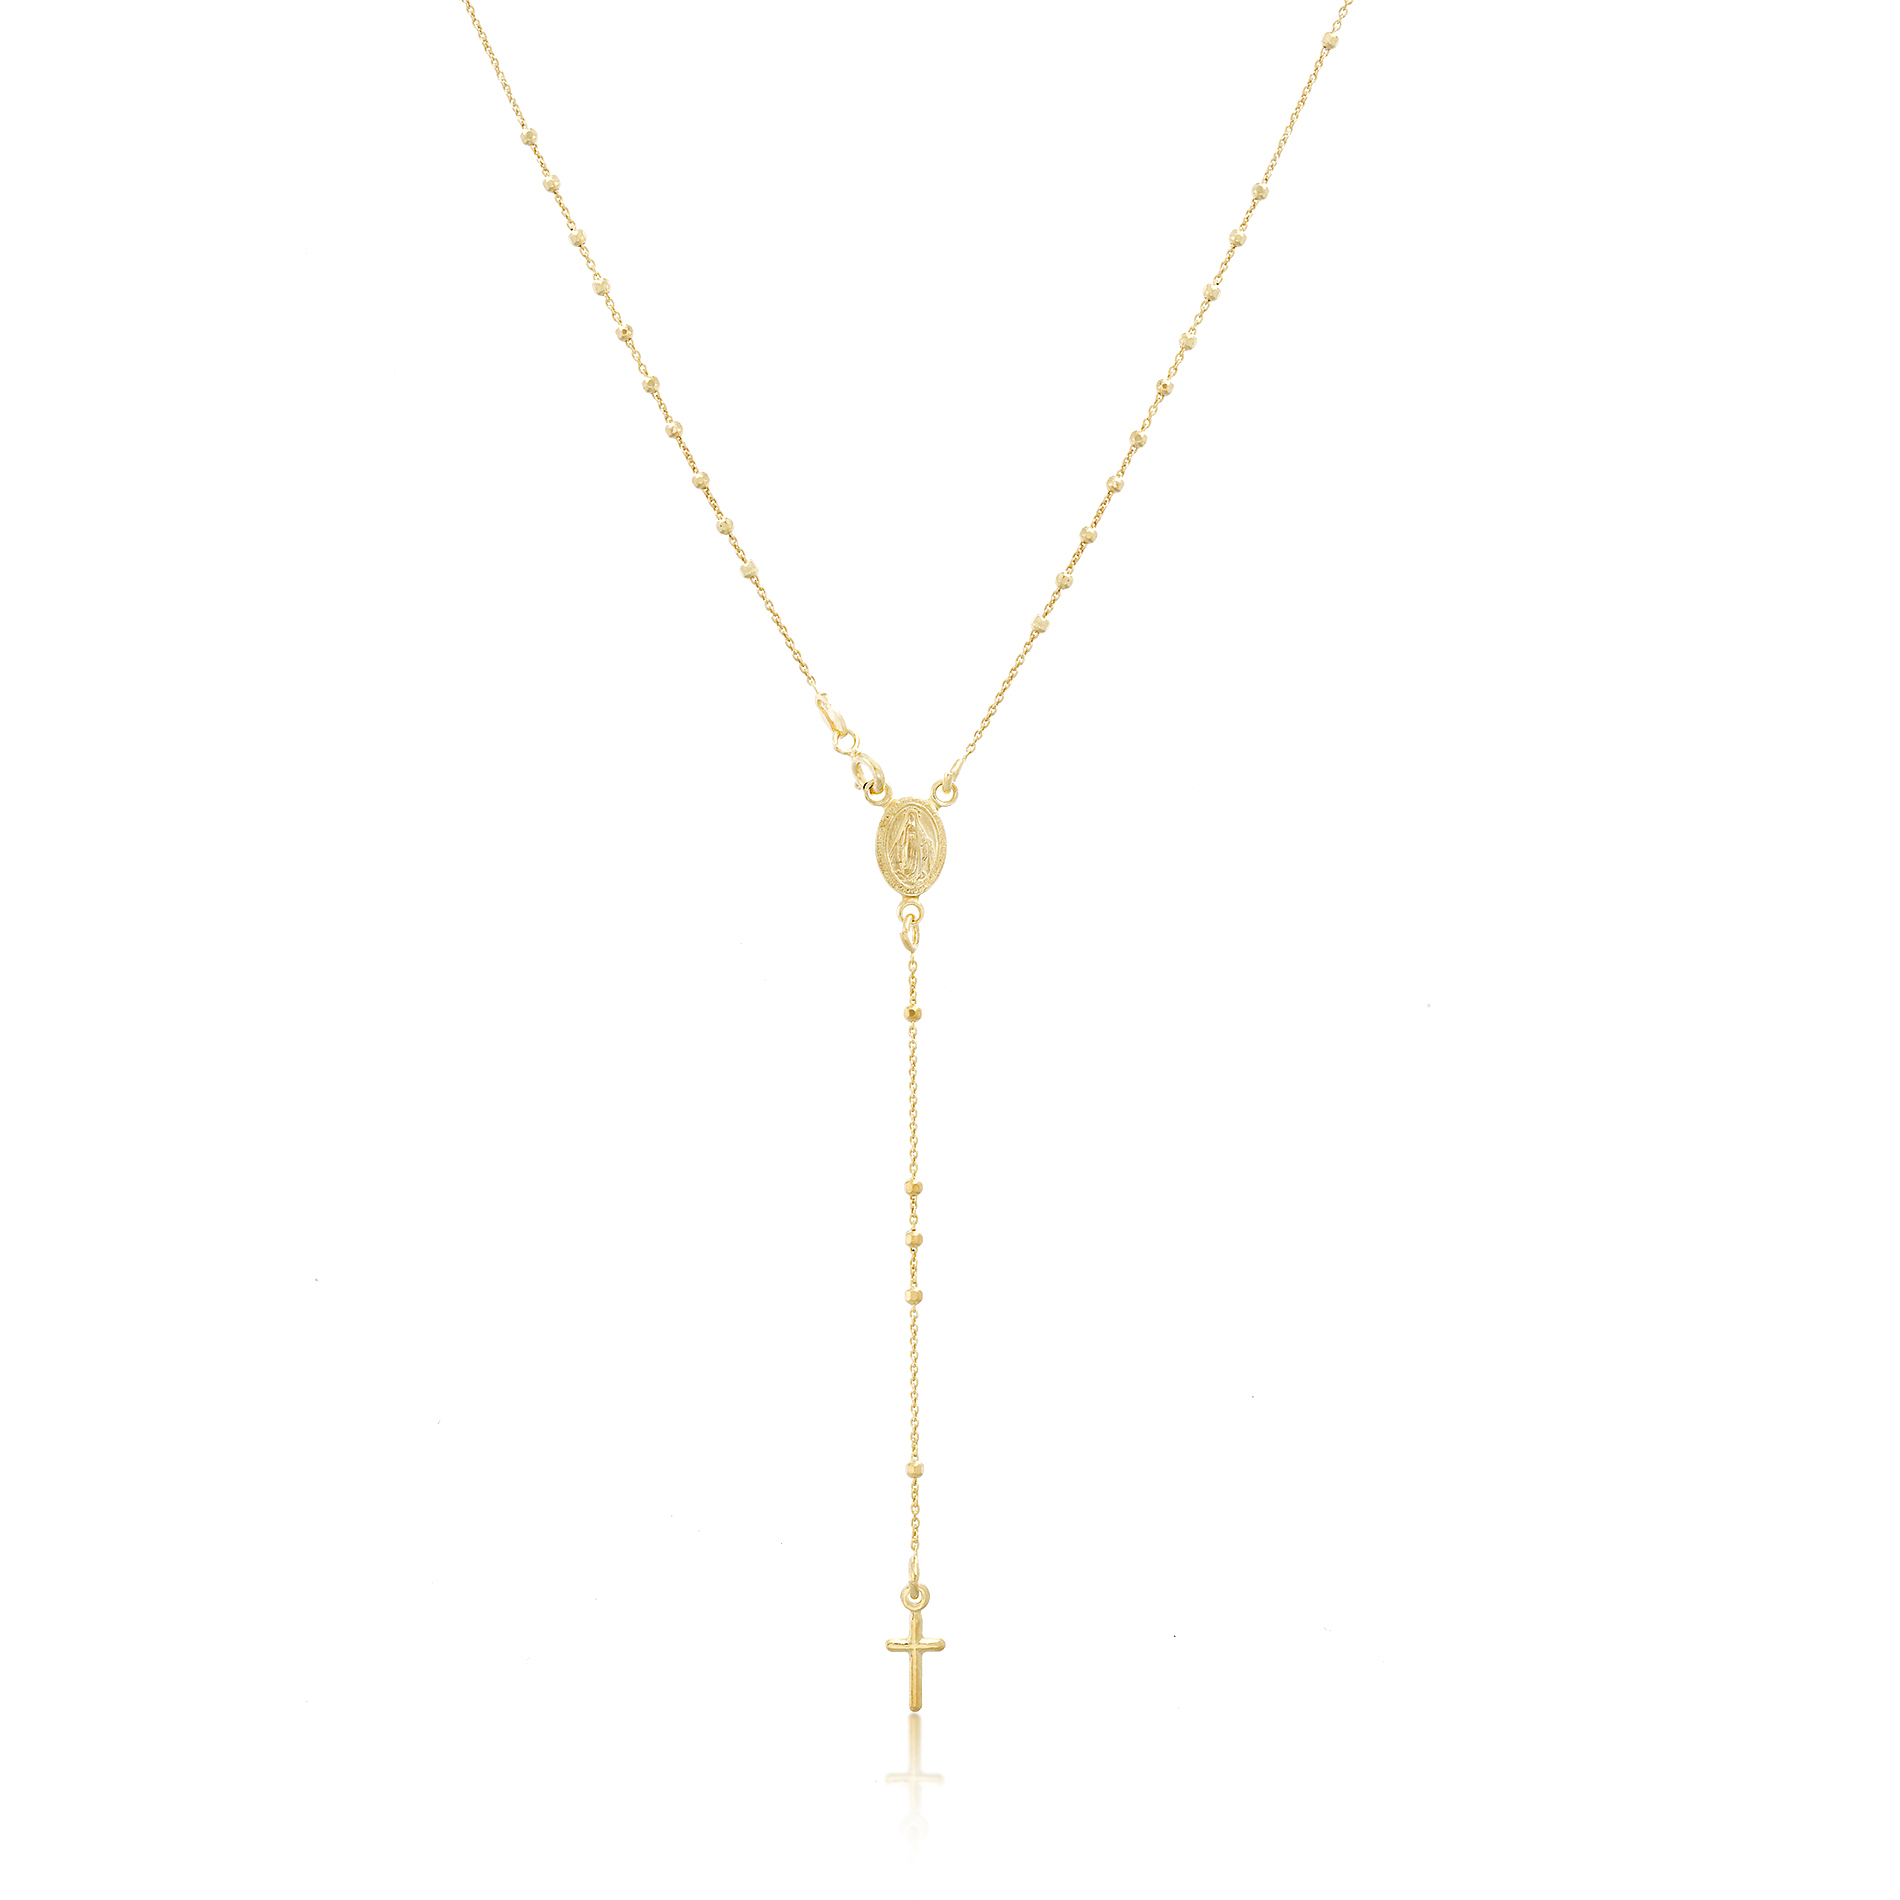 Gold Cross Necklace Catholic Necklace Gold Filled Sideway Cross Necklace Protection Necklace Faith Necklace Religious Necklace